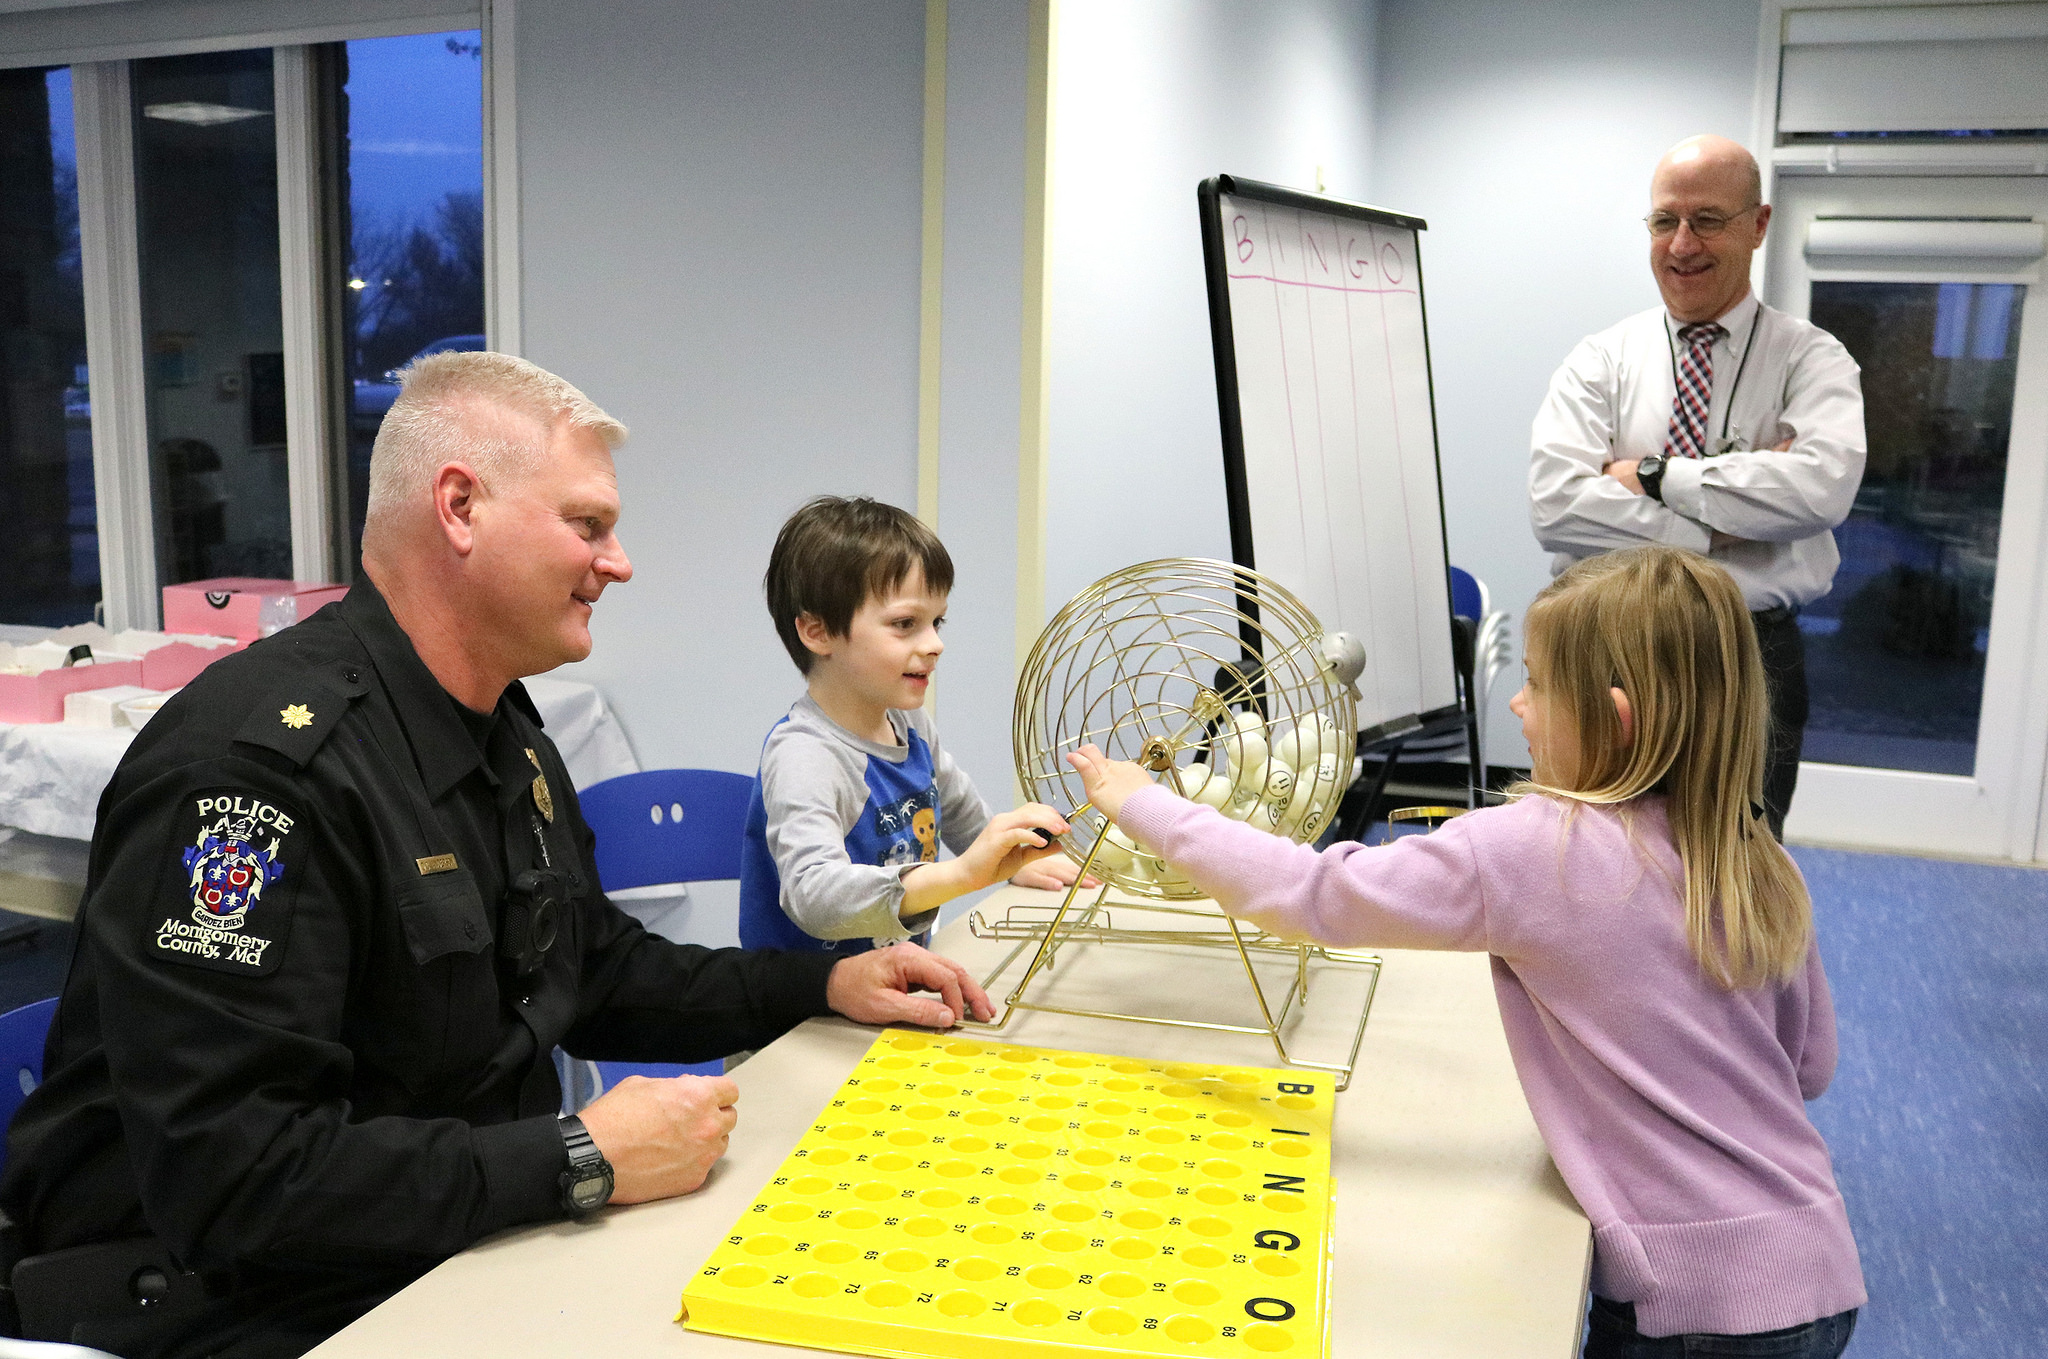 Bingo with Officer Dave